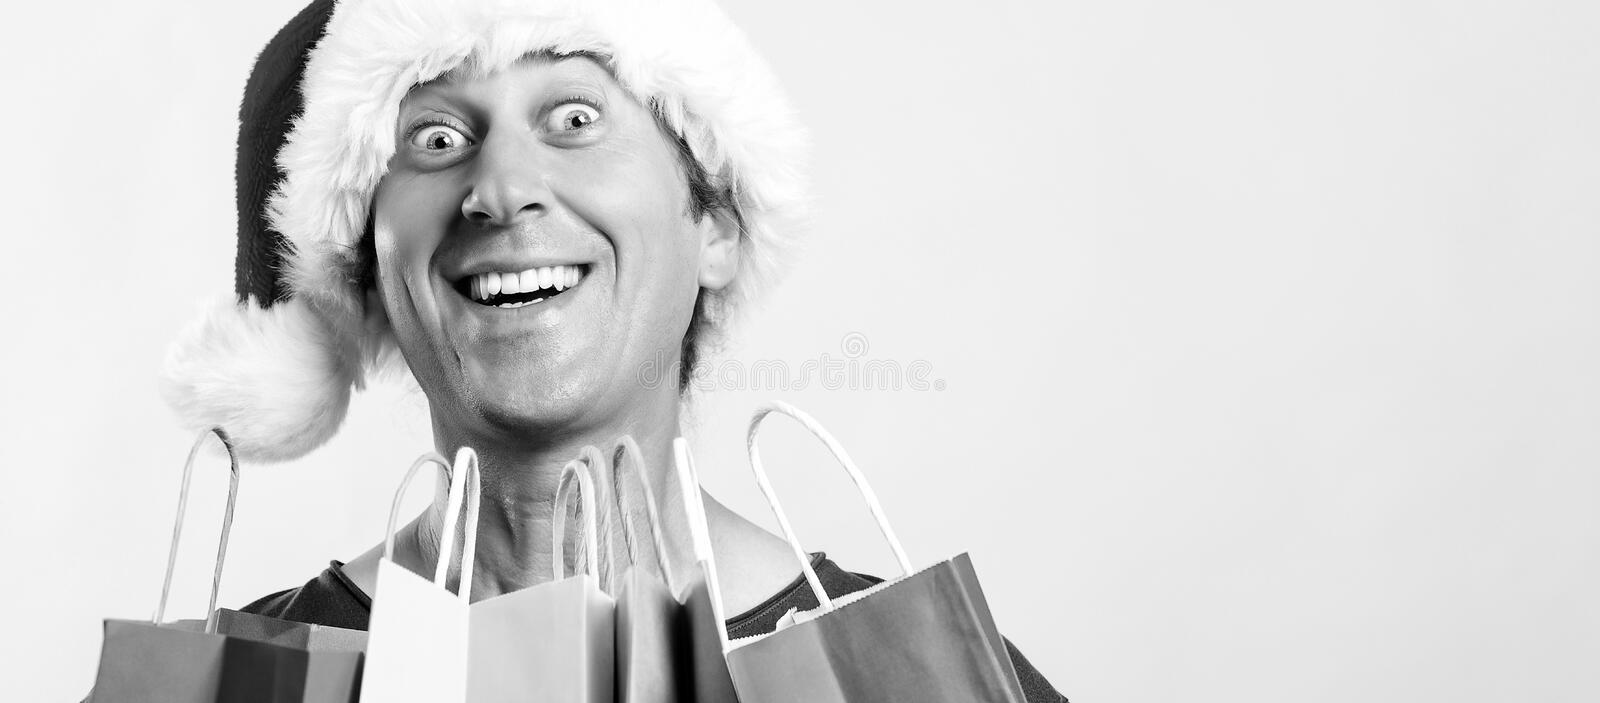 Excited young man in santa hat holding shopping bags. Christmas, sale, discount and holidays concept. Christmas crazy shopper with stock image